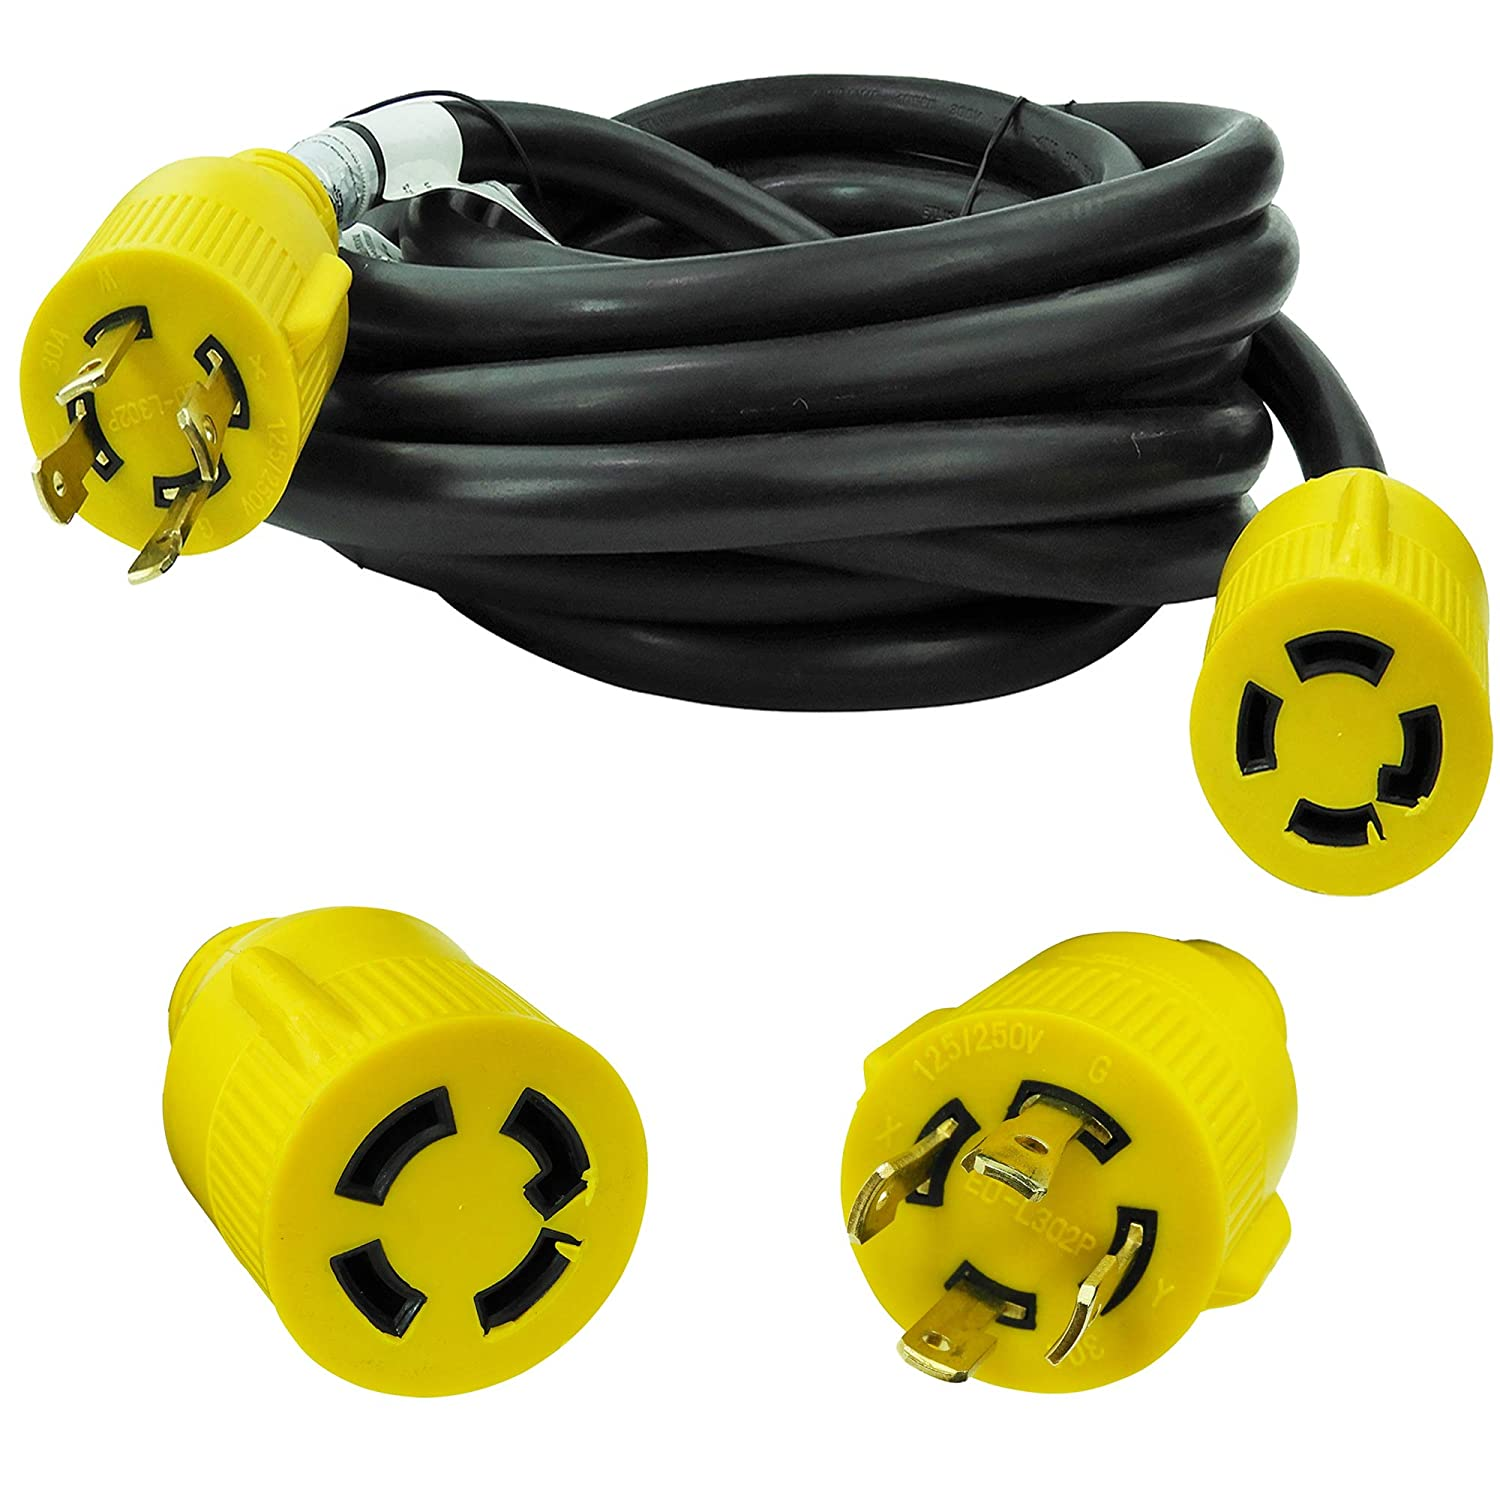 L1430p To Cs6364c Power Cable Plug Adapter 30a 250v 1 Foot 8 4